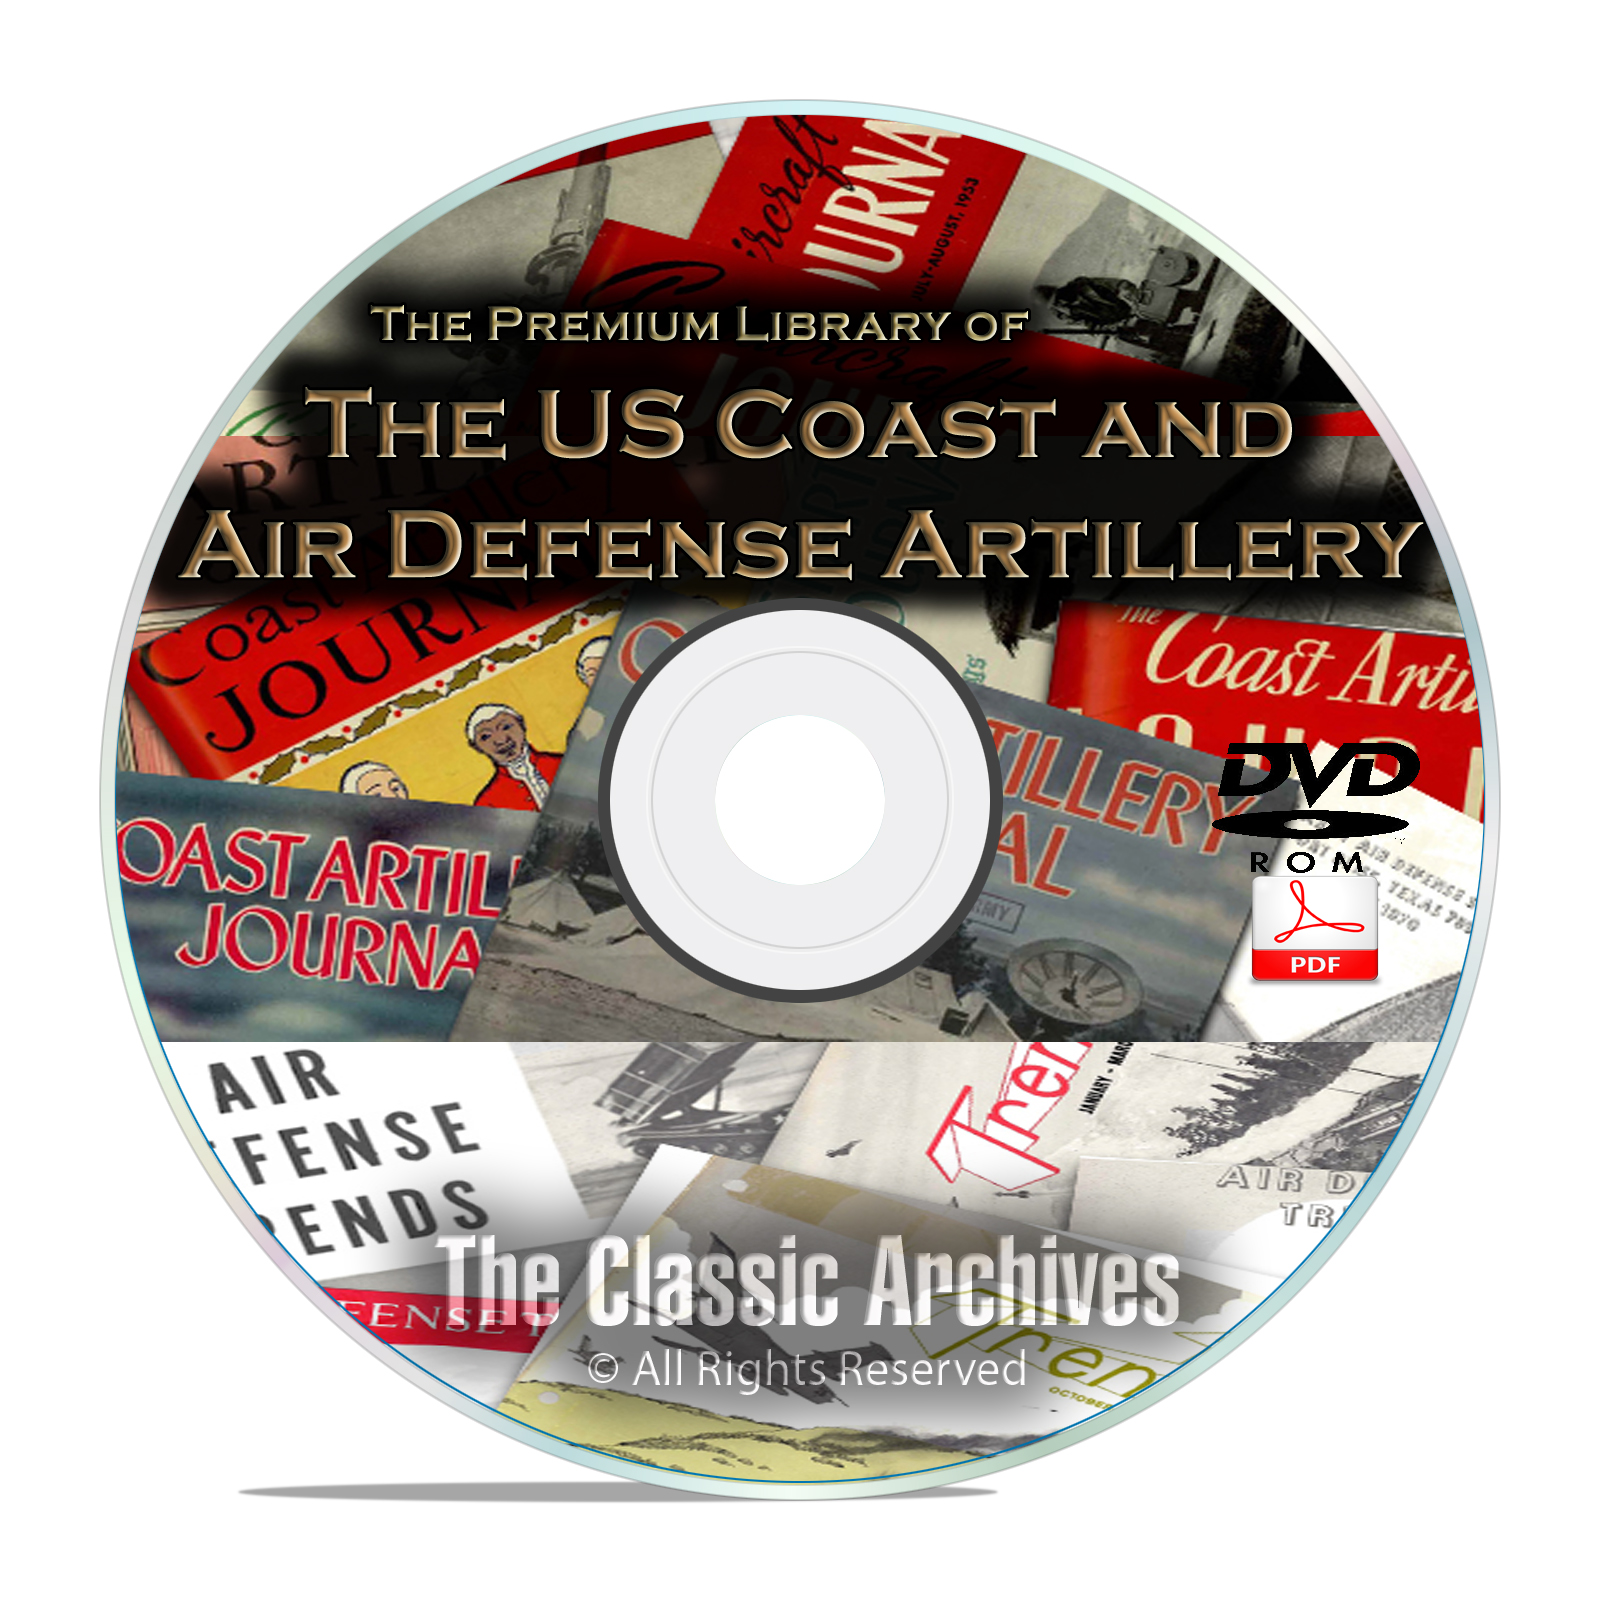 Coast Artillery Journal, Anti Aircraft Air Defense Trends 385 Issues on DVD